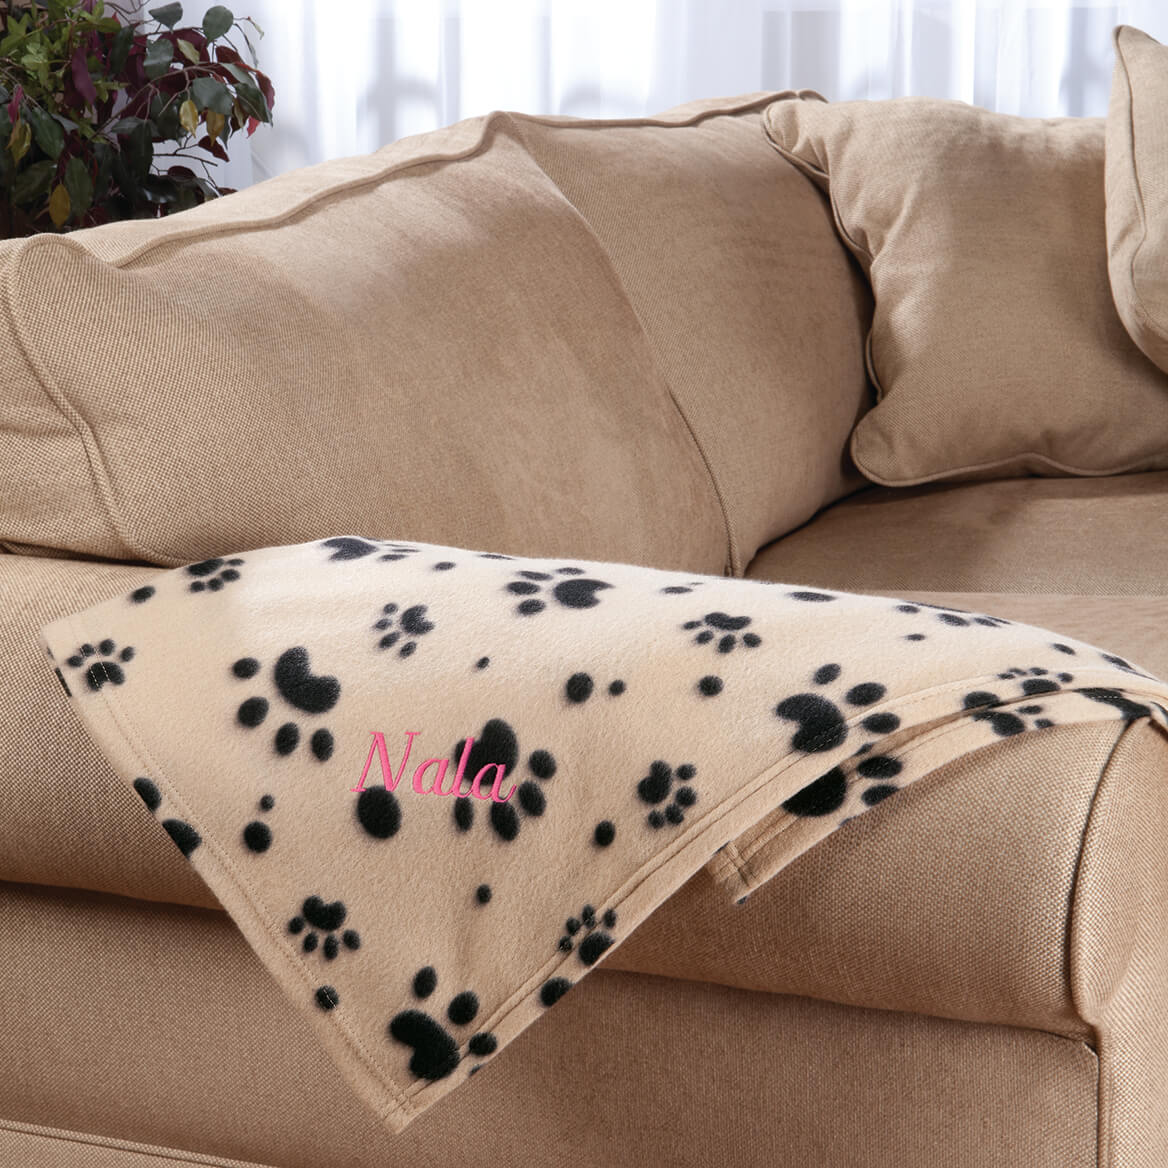 Personalized Paw Print Pet Blanket-351600